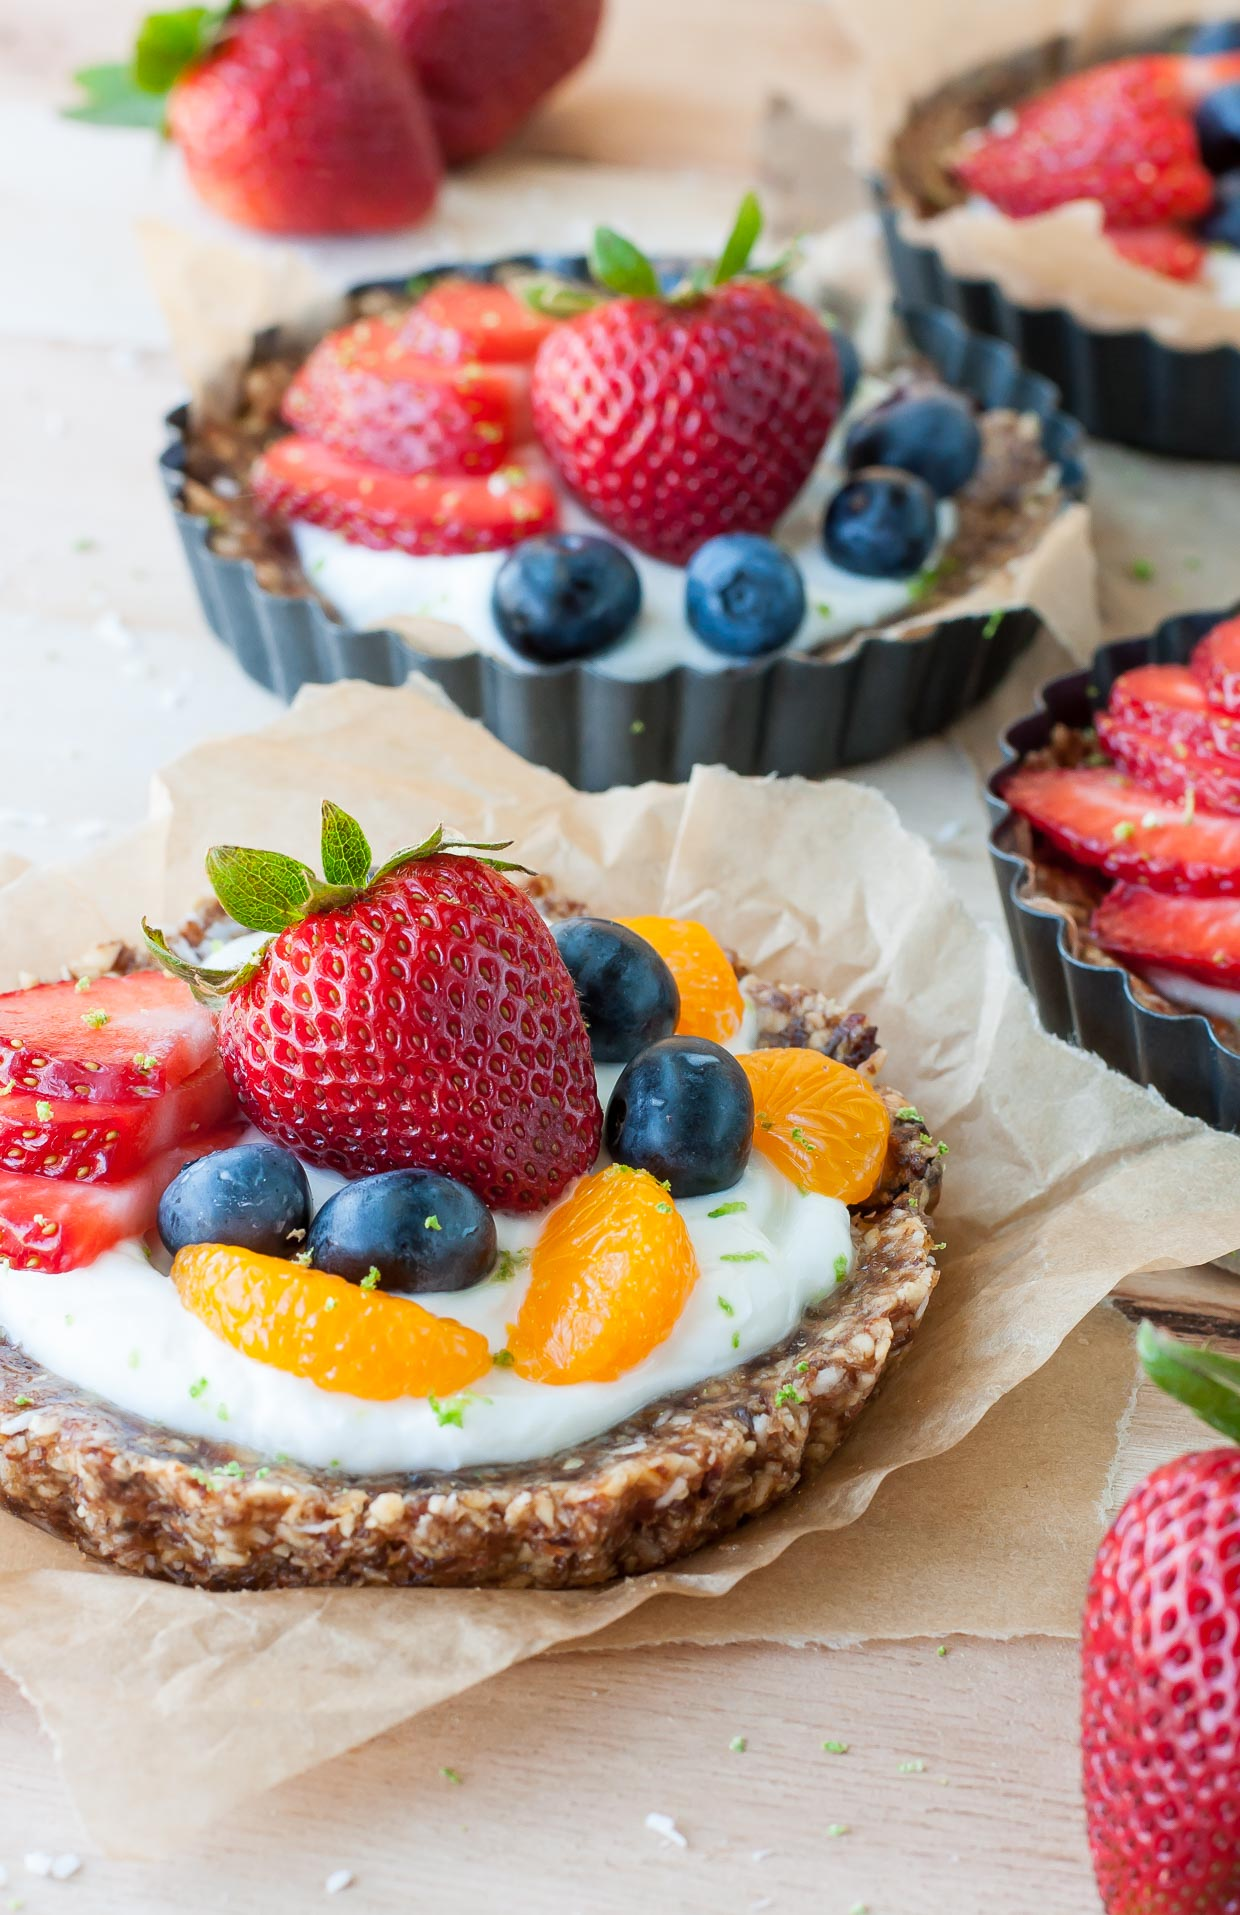 Healthy No-Bake Coconut Lime Tarts with Fruit and Yogurt